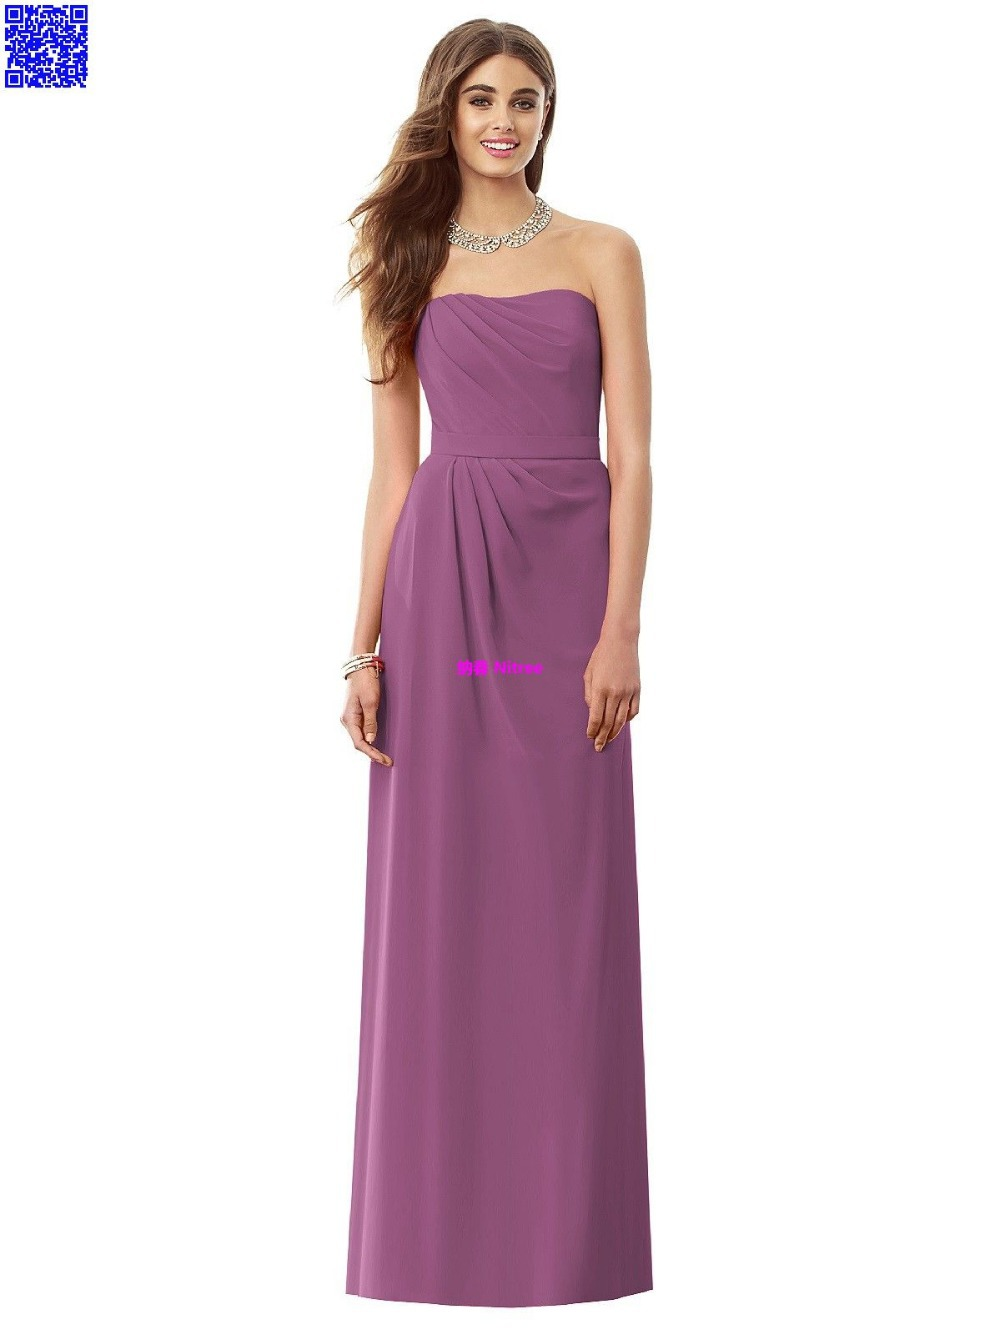 Sell used bridesmaid dresses bridesmaid dresses for Where to sell wedding dresses